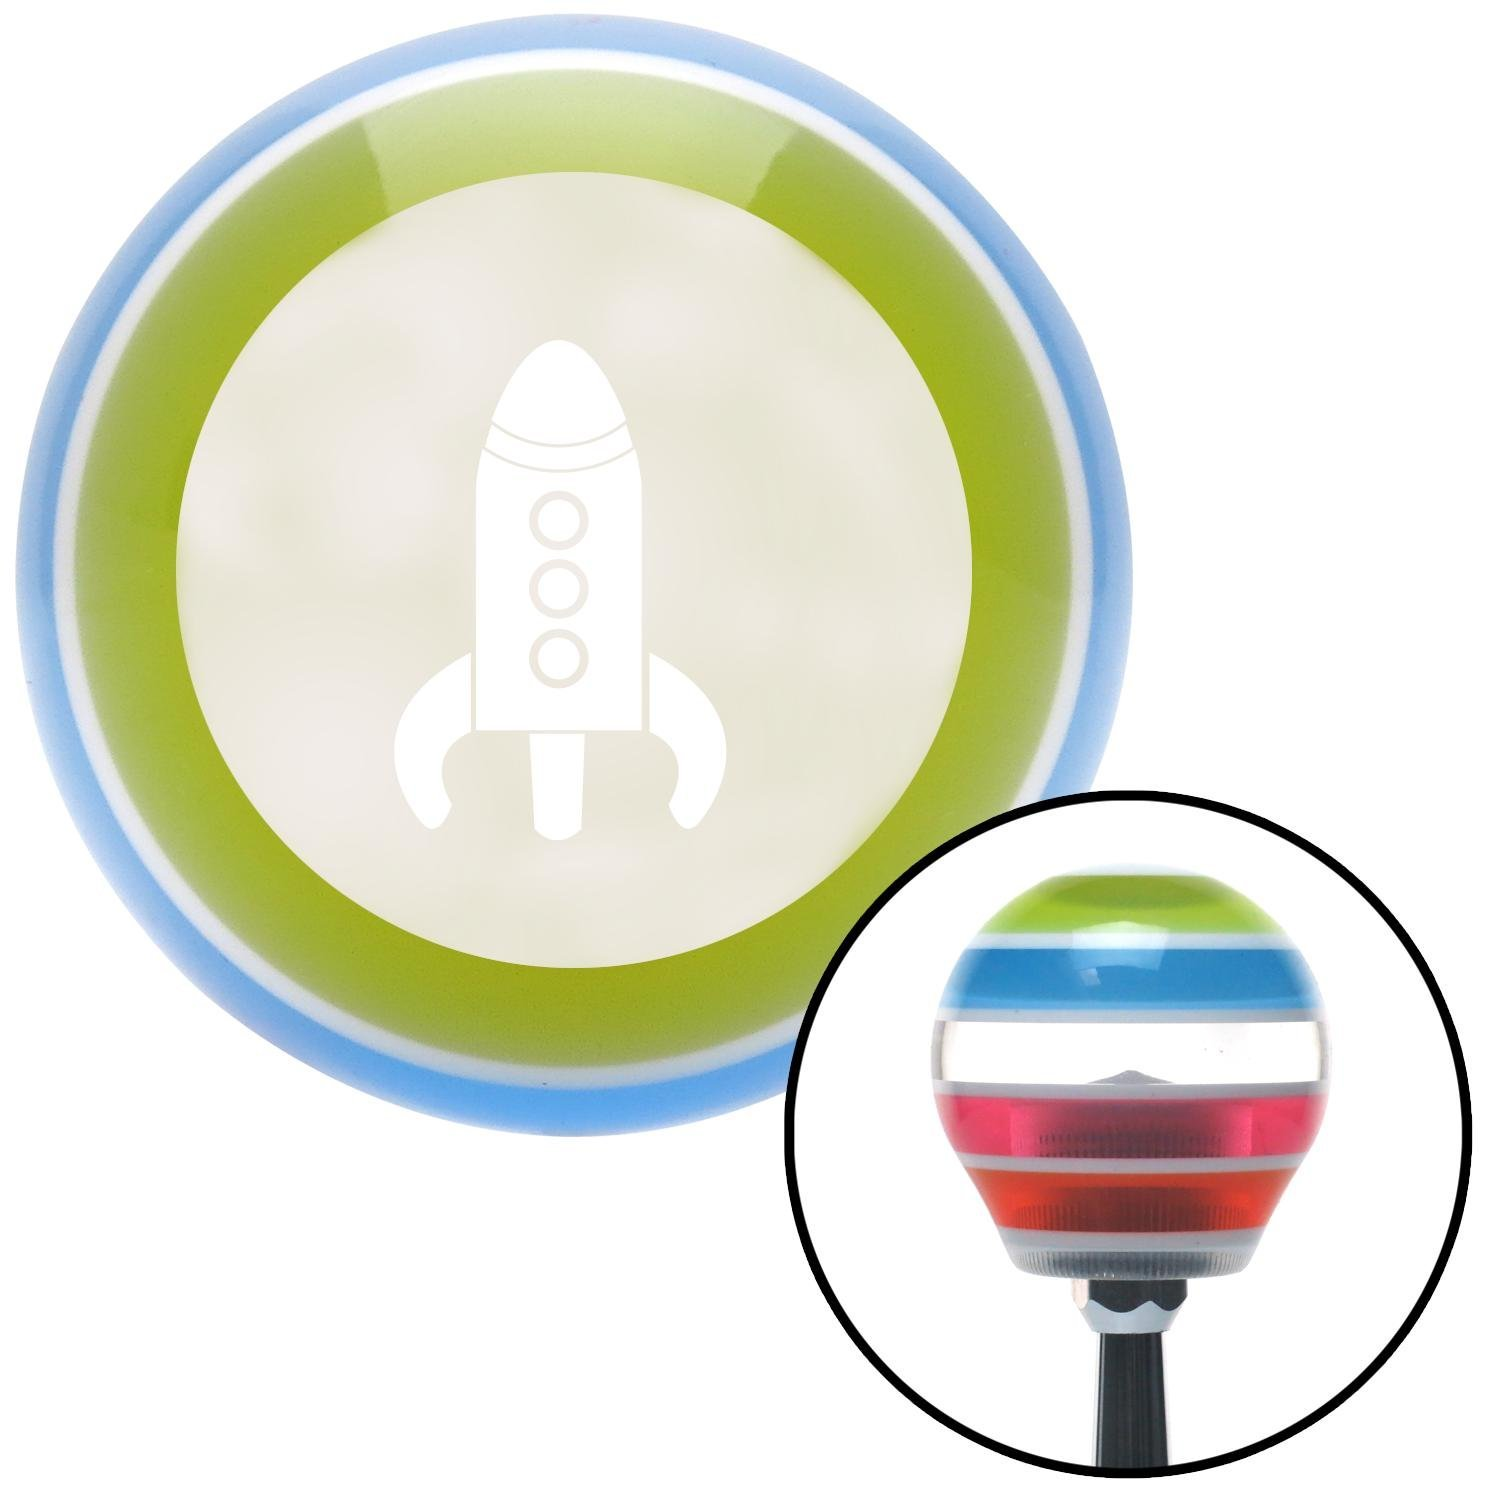 American Shifter 138270 Stripe Shift Knob with M16 x 1.5 Insert White Space Ship